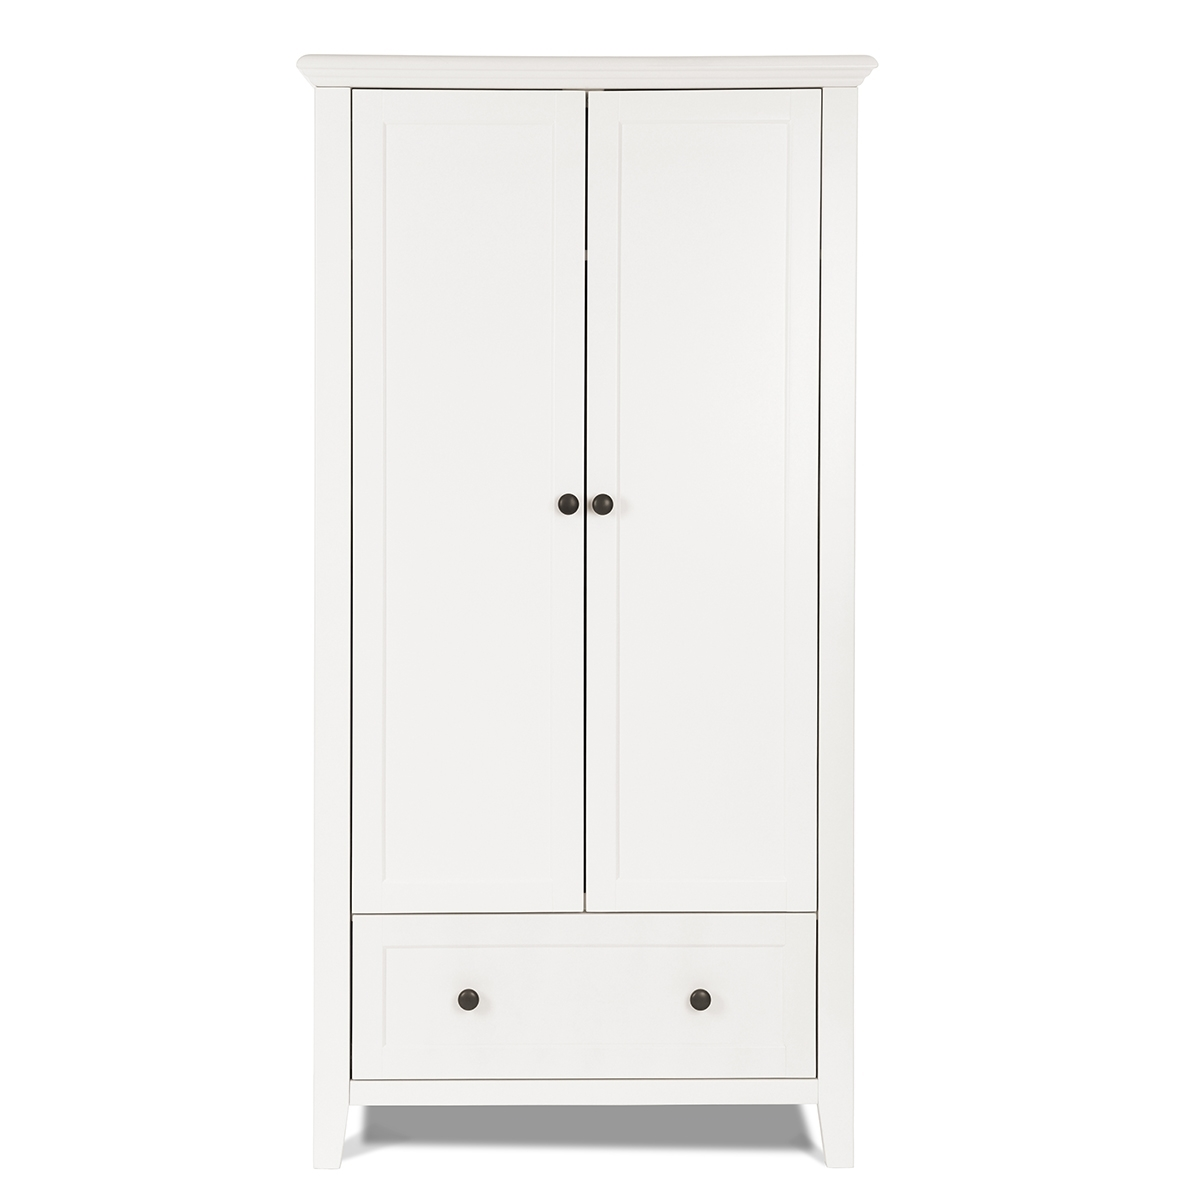 Picture of Nostalgia Wardrobe (Out of stock)